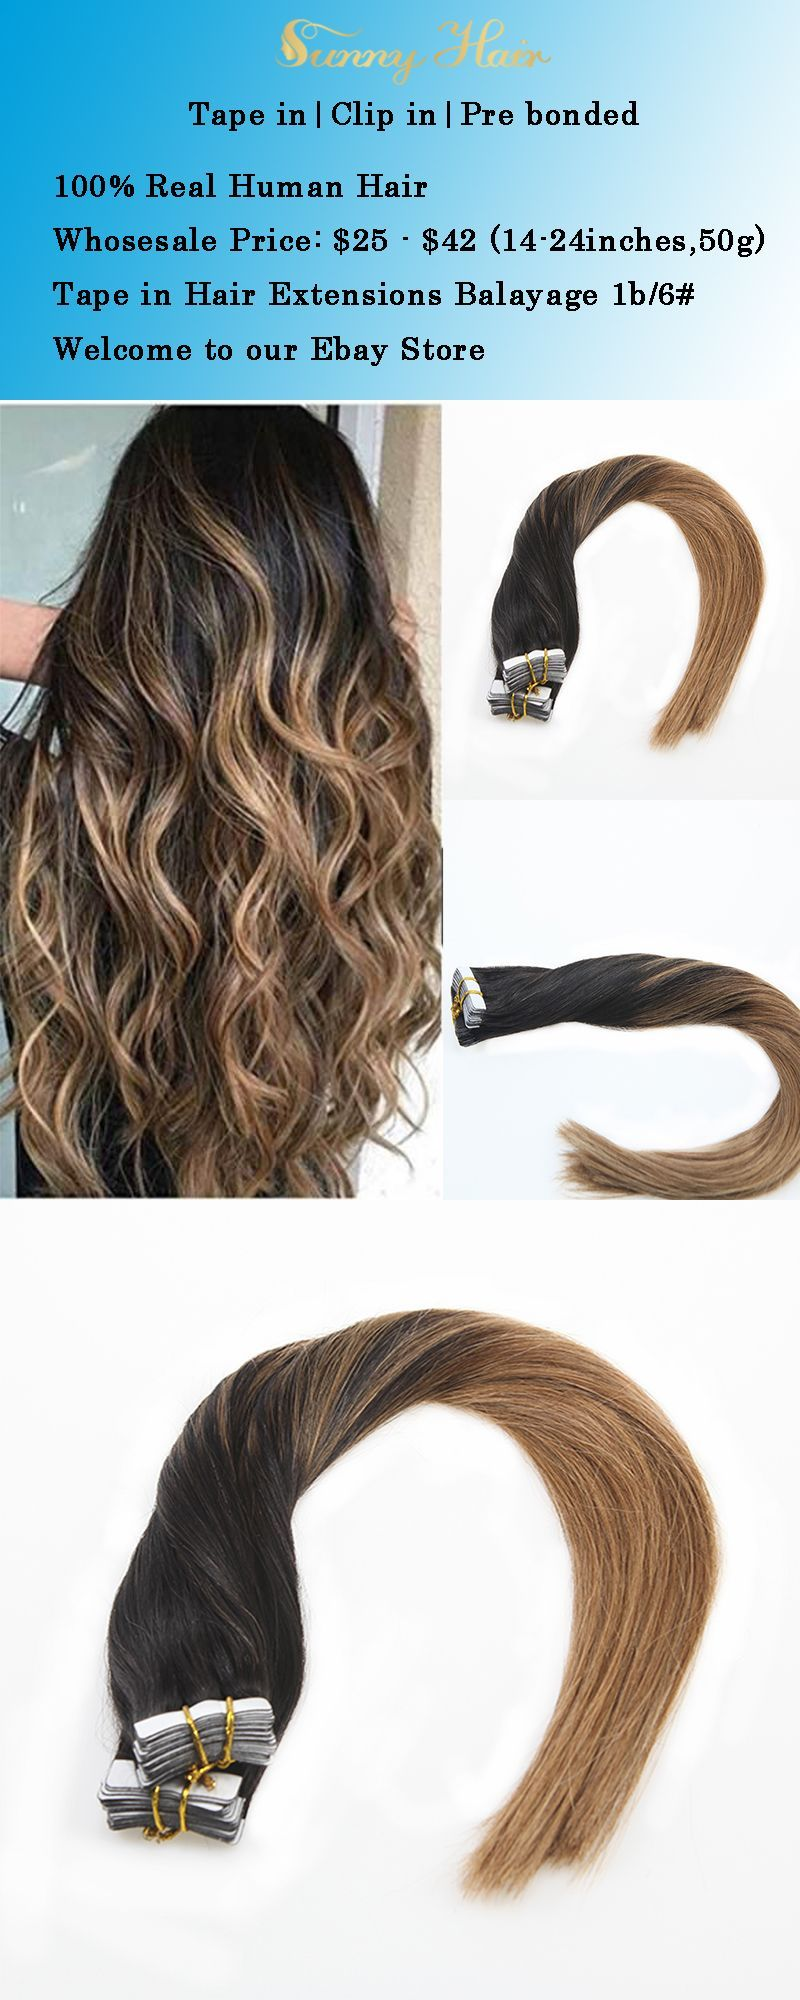 Balayege Color Black To Brown Hair Amazing Price With Free